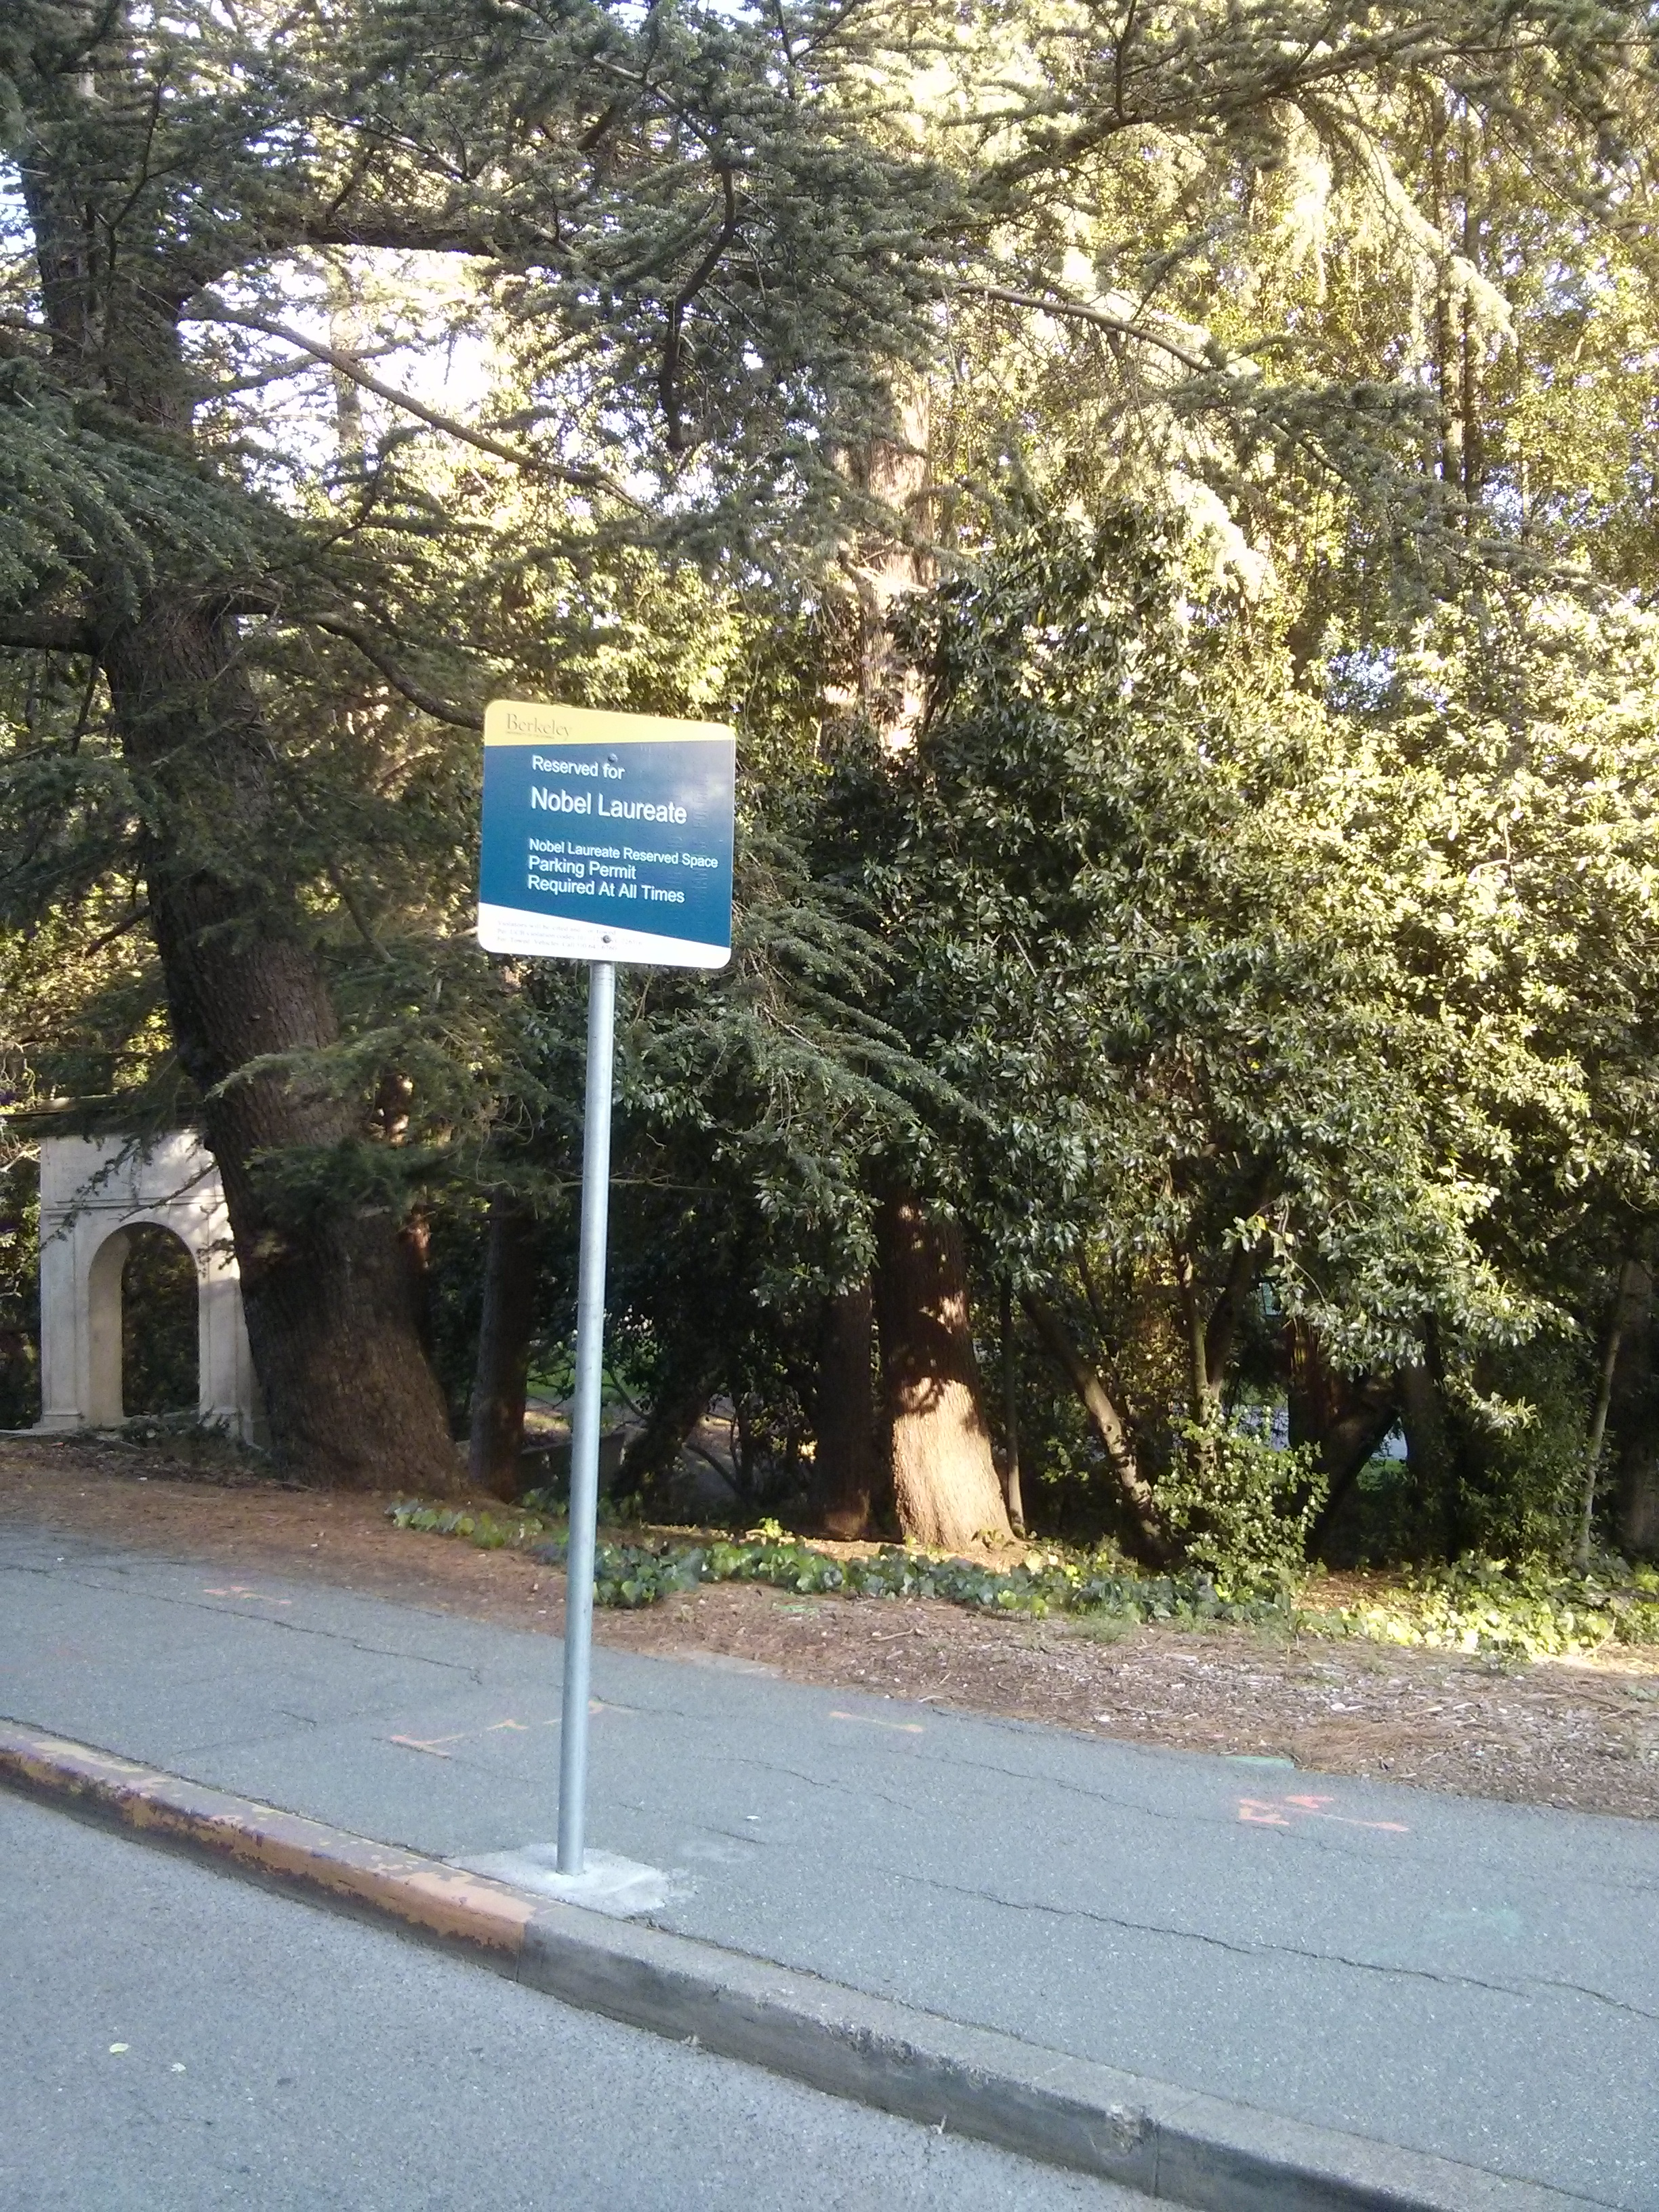 Noble Laureate parking at Berkeley. The institution has produced more Laureates than anywhere else, and you get a parking spot for life at the university once you're named. NBD.